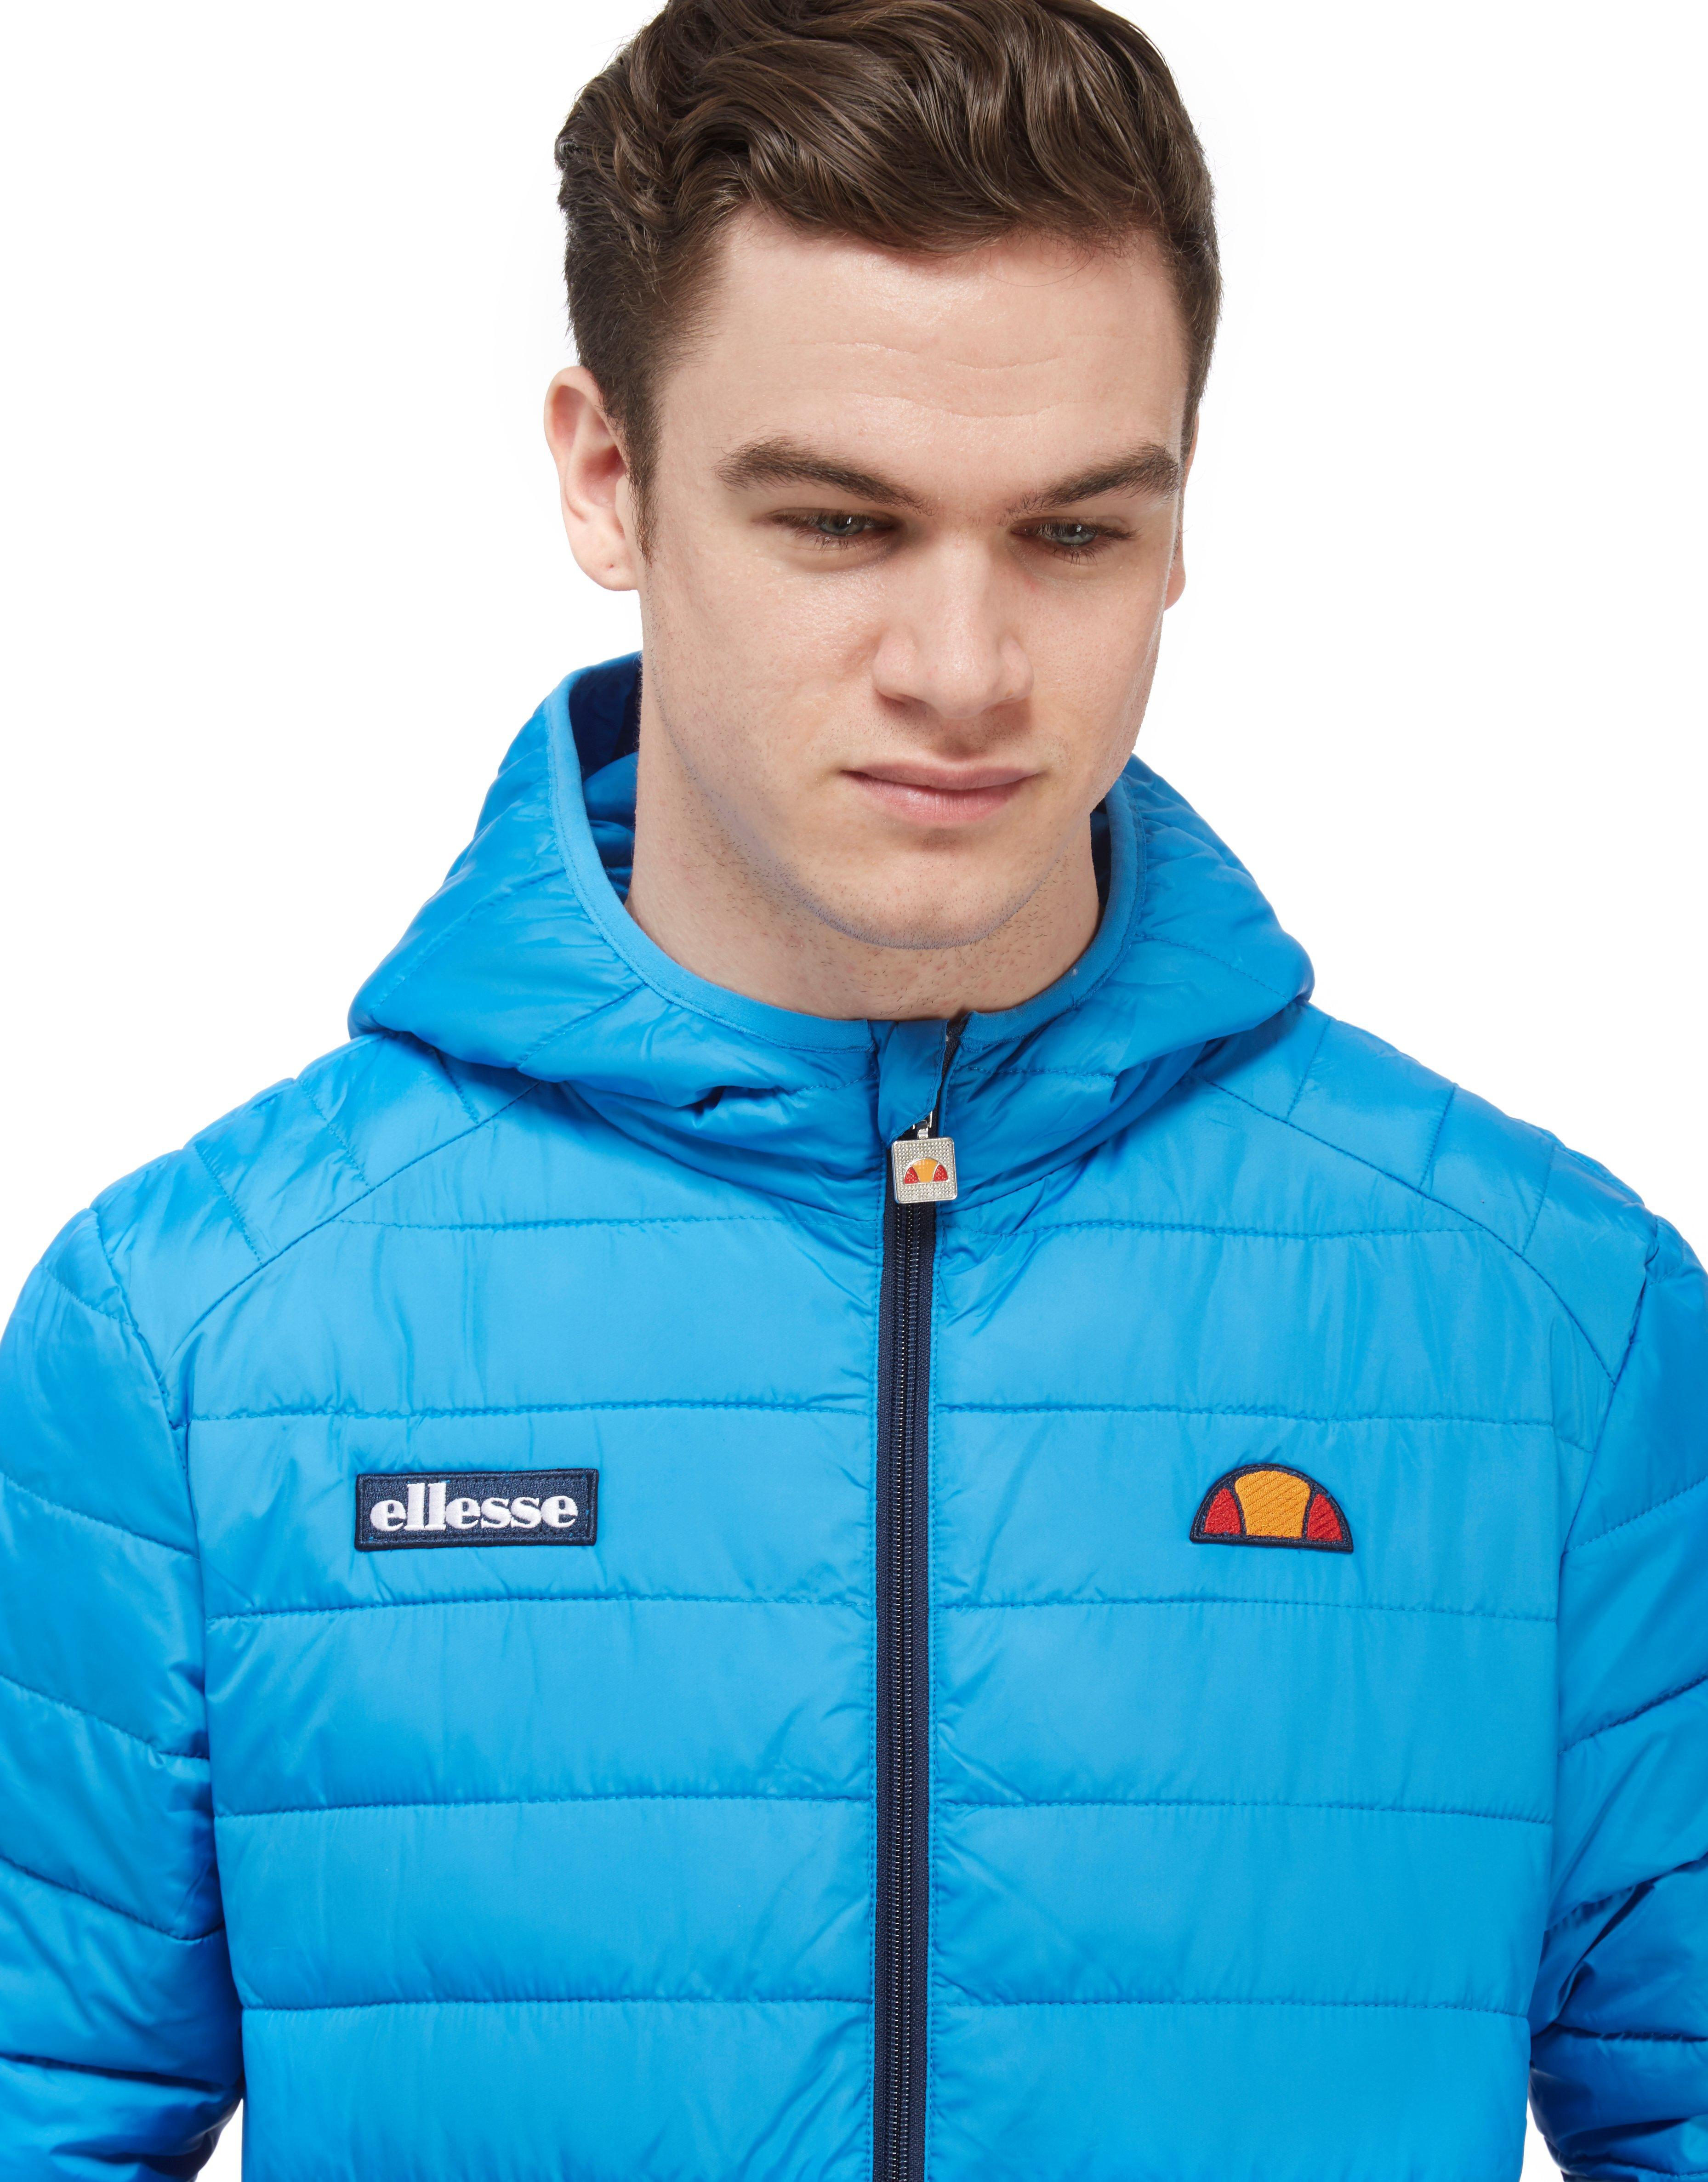 Ellesse Synthetic Lombardy Jacket in Blue for Men